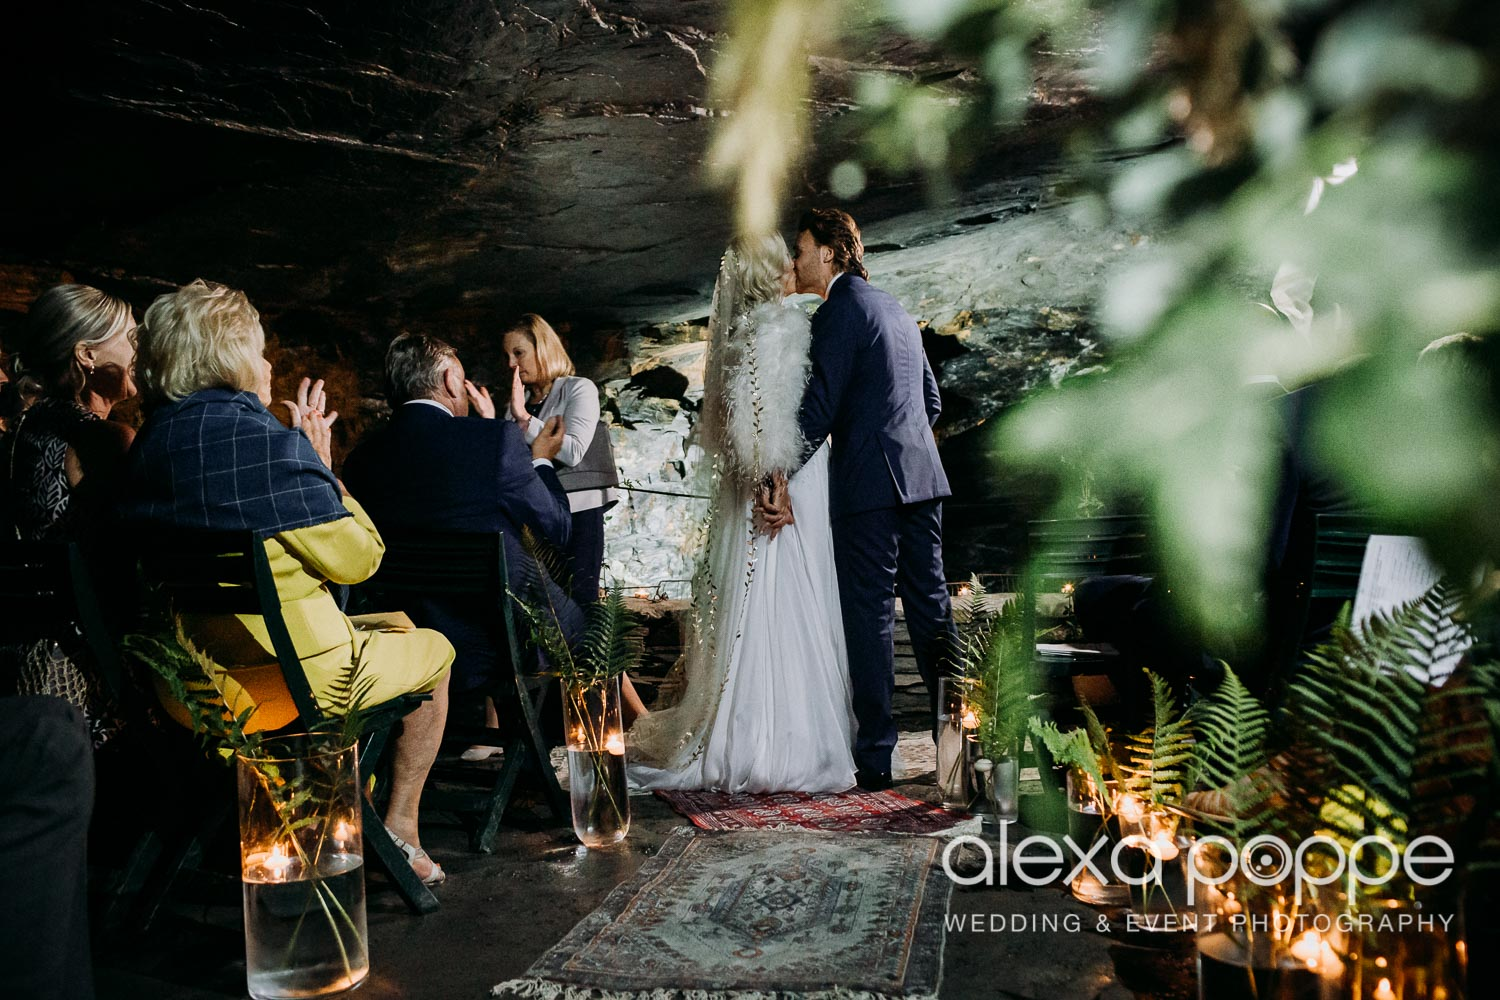 VA_wedding_edenproject_carnglaze_27.jpg